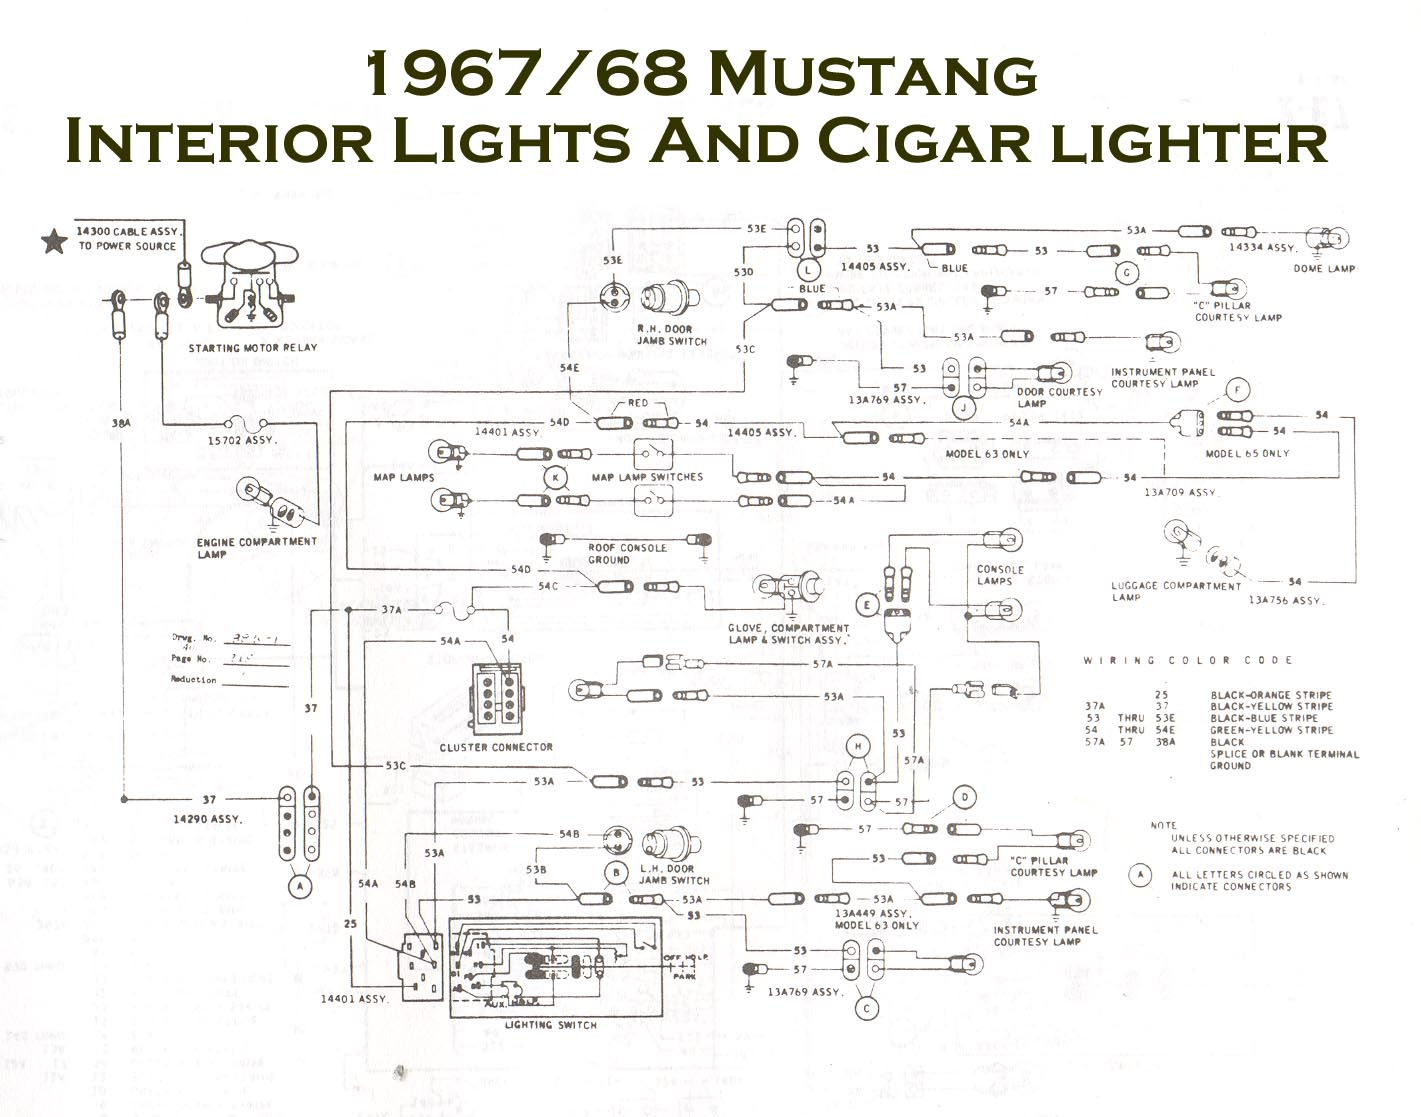 1968 Mustang Wiring Diagram Free Guide And Troubleshooting Of 68 Dash Picture Images Gallery